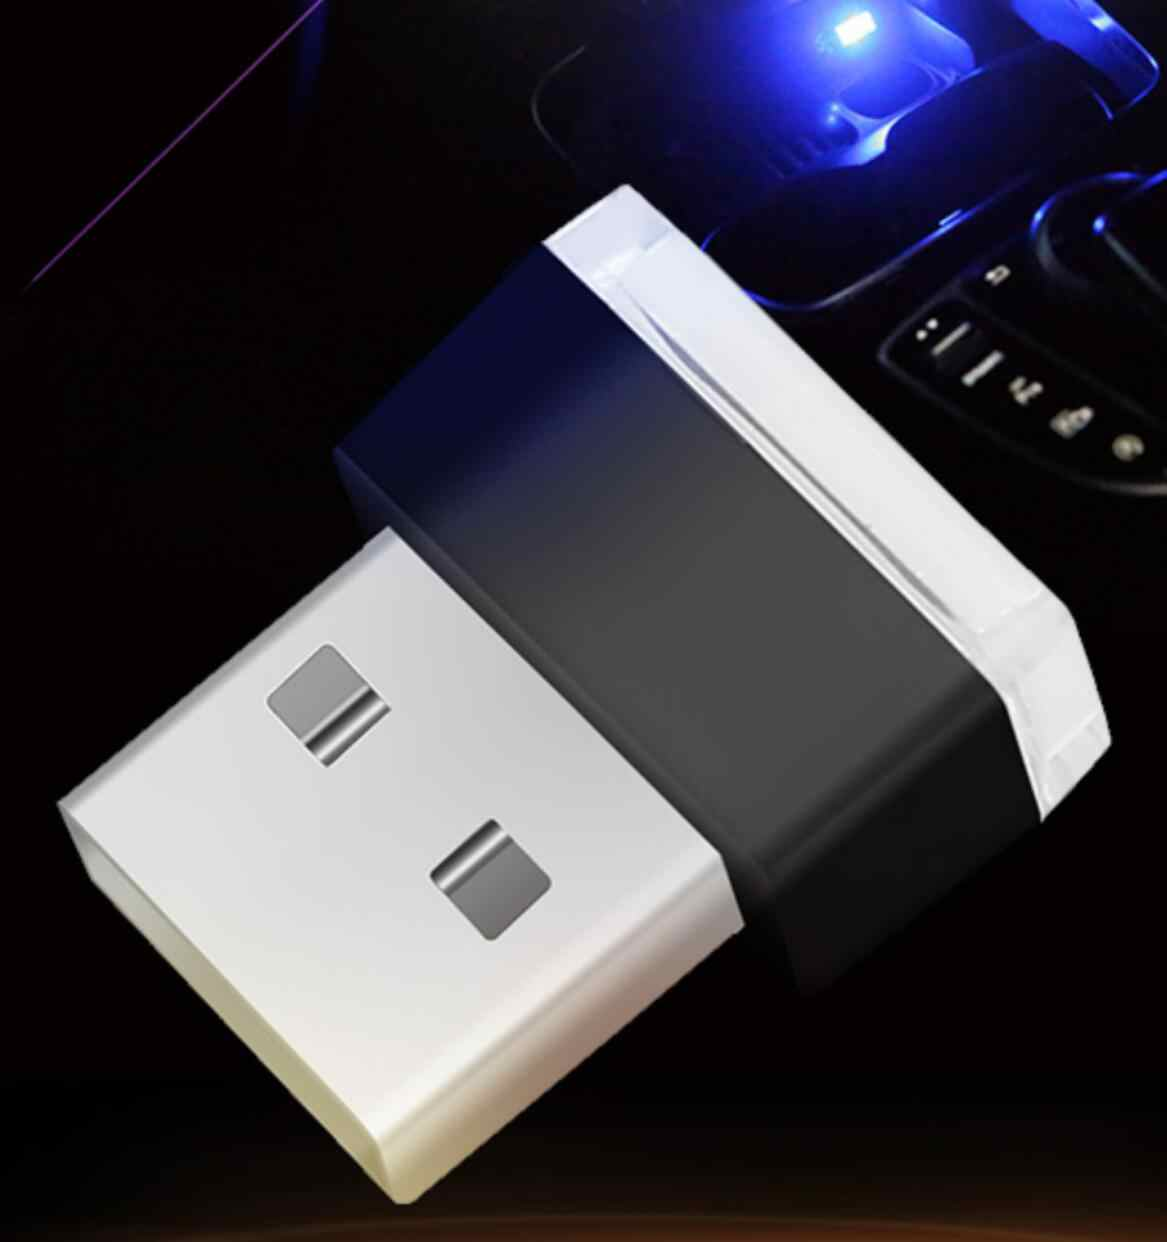 Car styling USB Decorative Lamp Lighting LED Atmosphere Lights Universal PC Portable Plug and Play Red/Blue/White/Green/Plnk